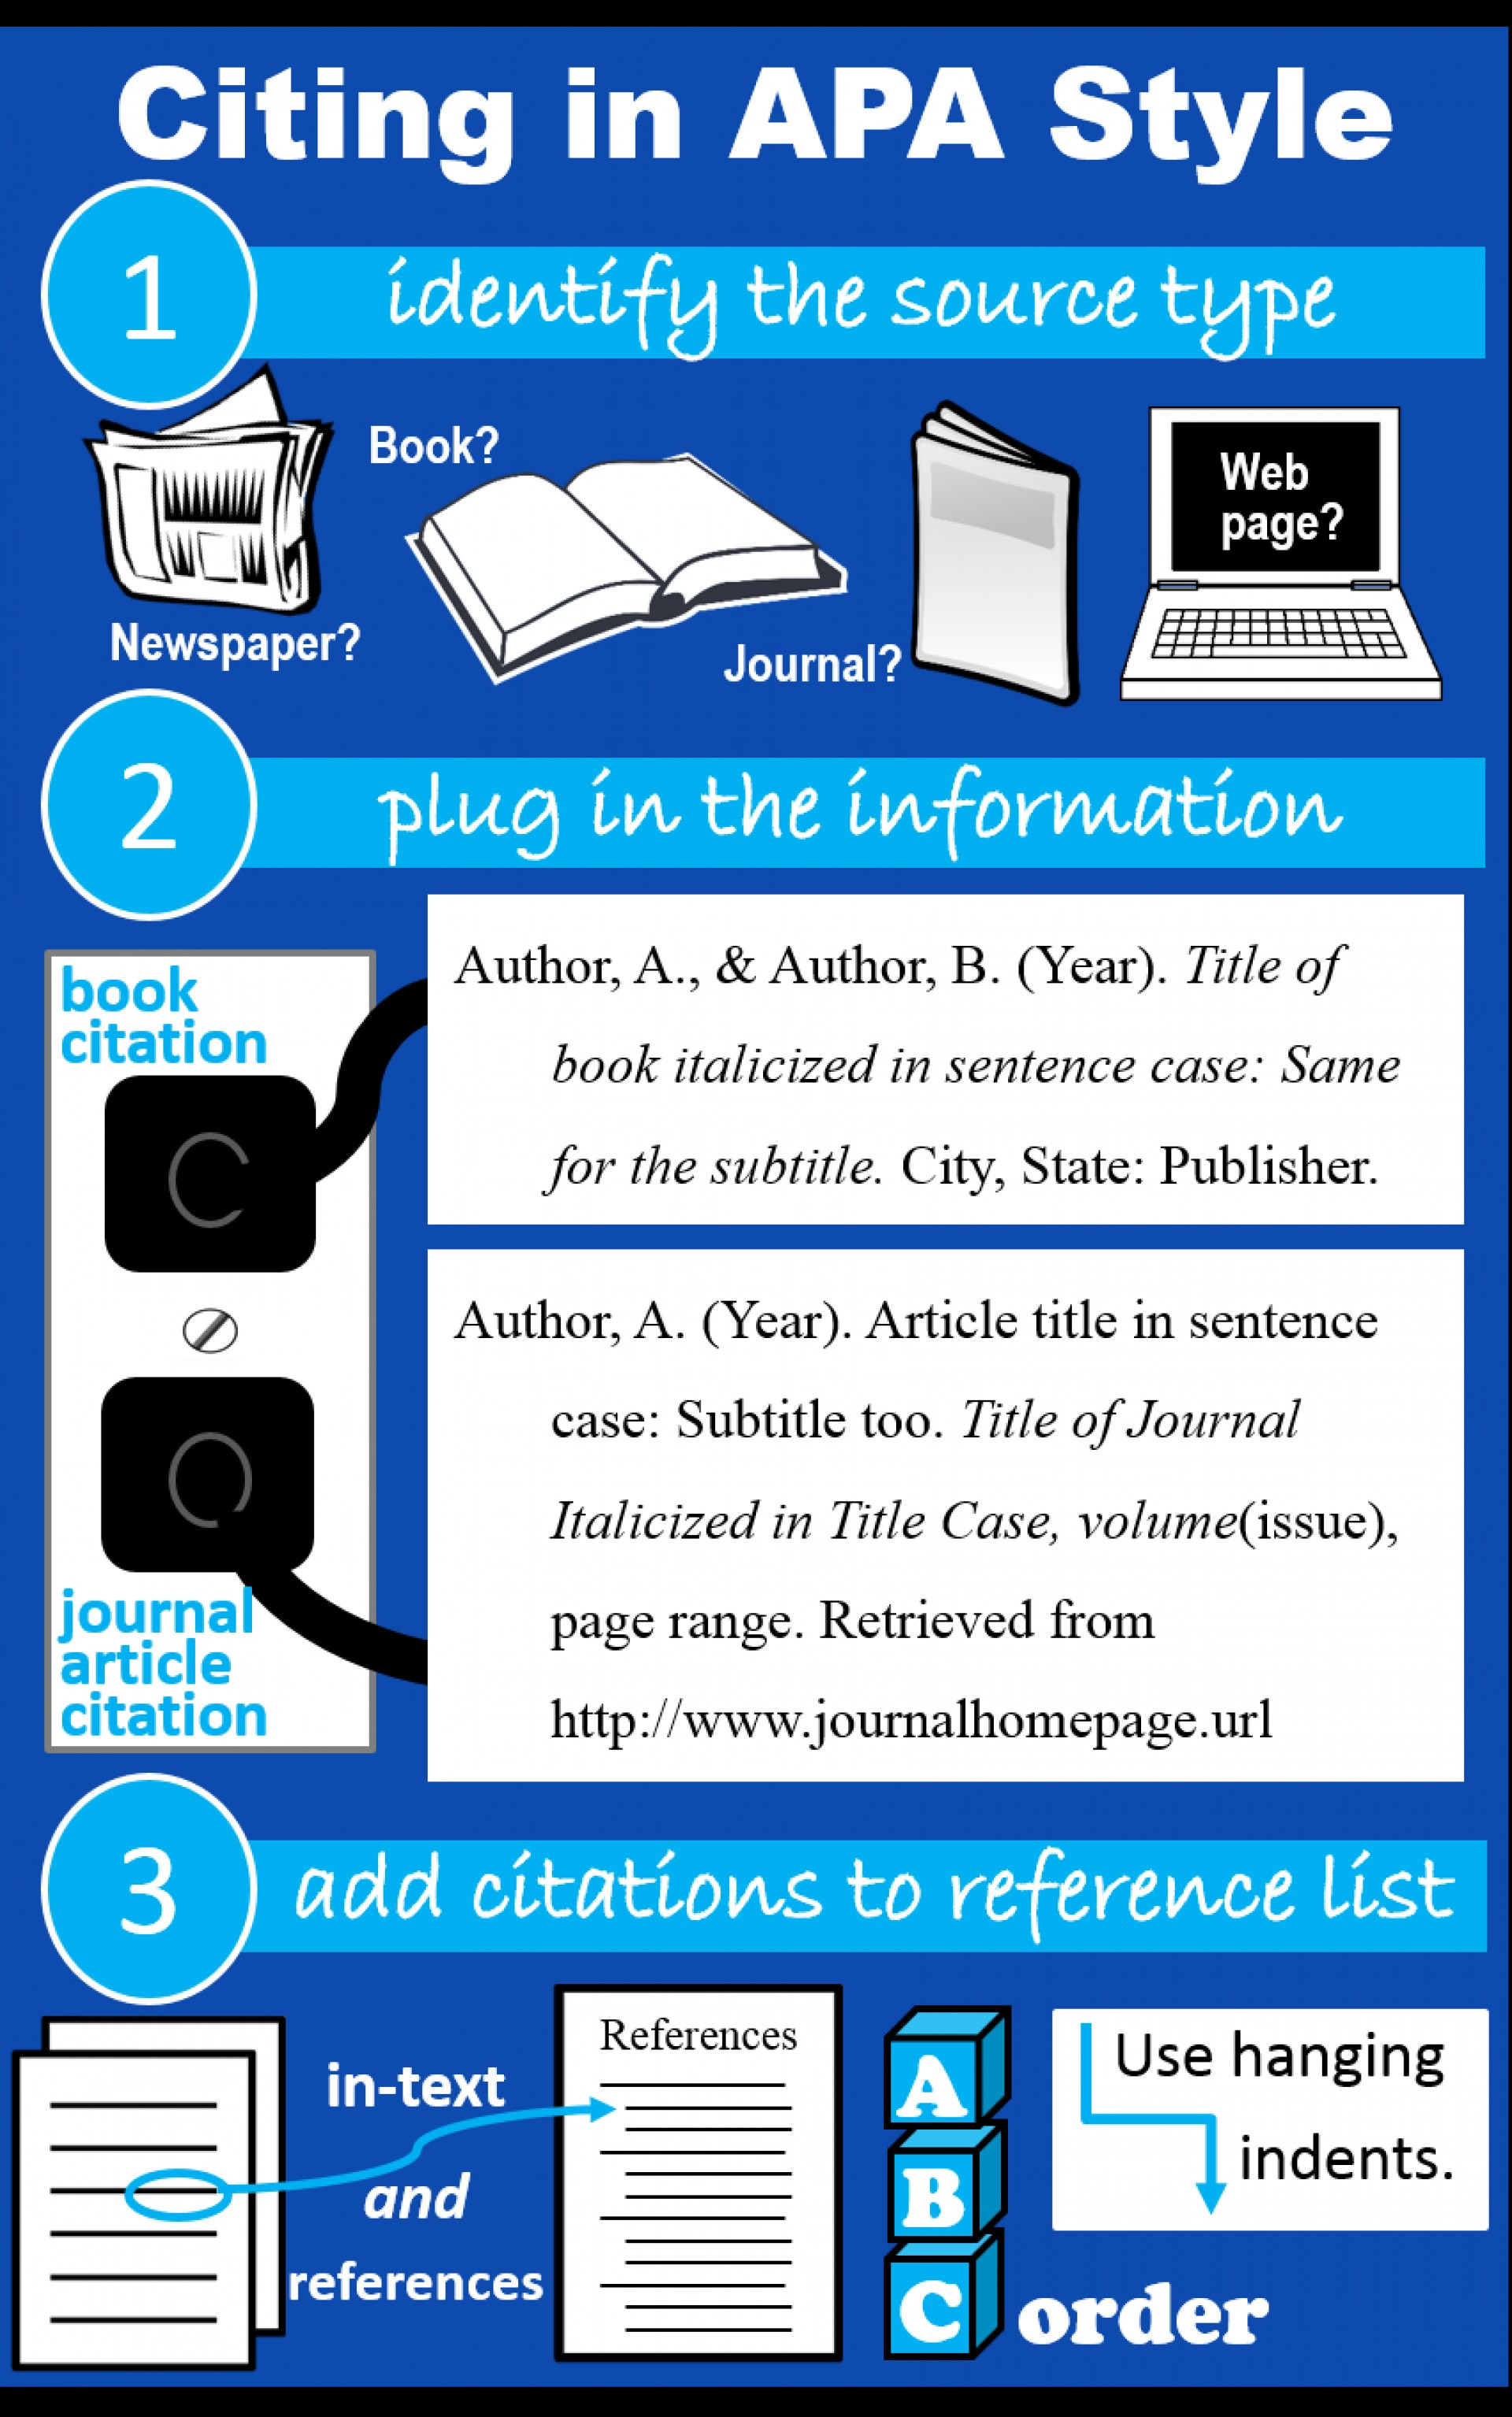 018 Citing Sources In Research Paper Apa Infographic Astounding Paragraph Two One 1920